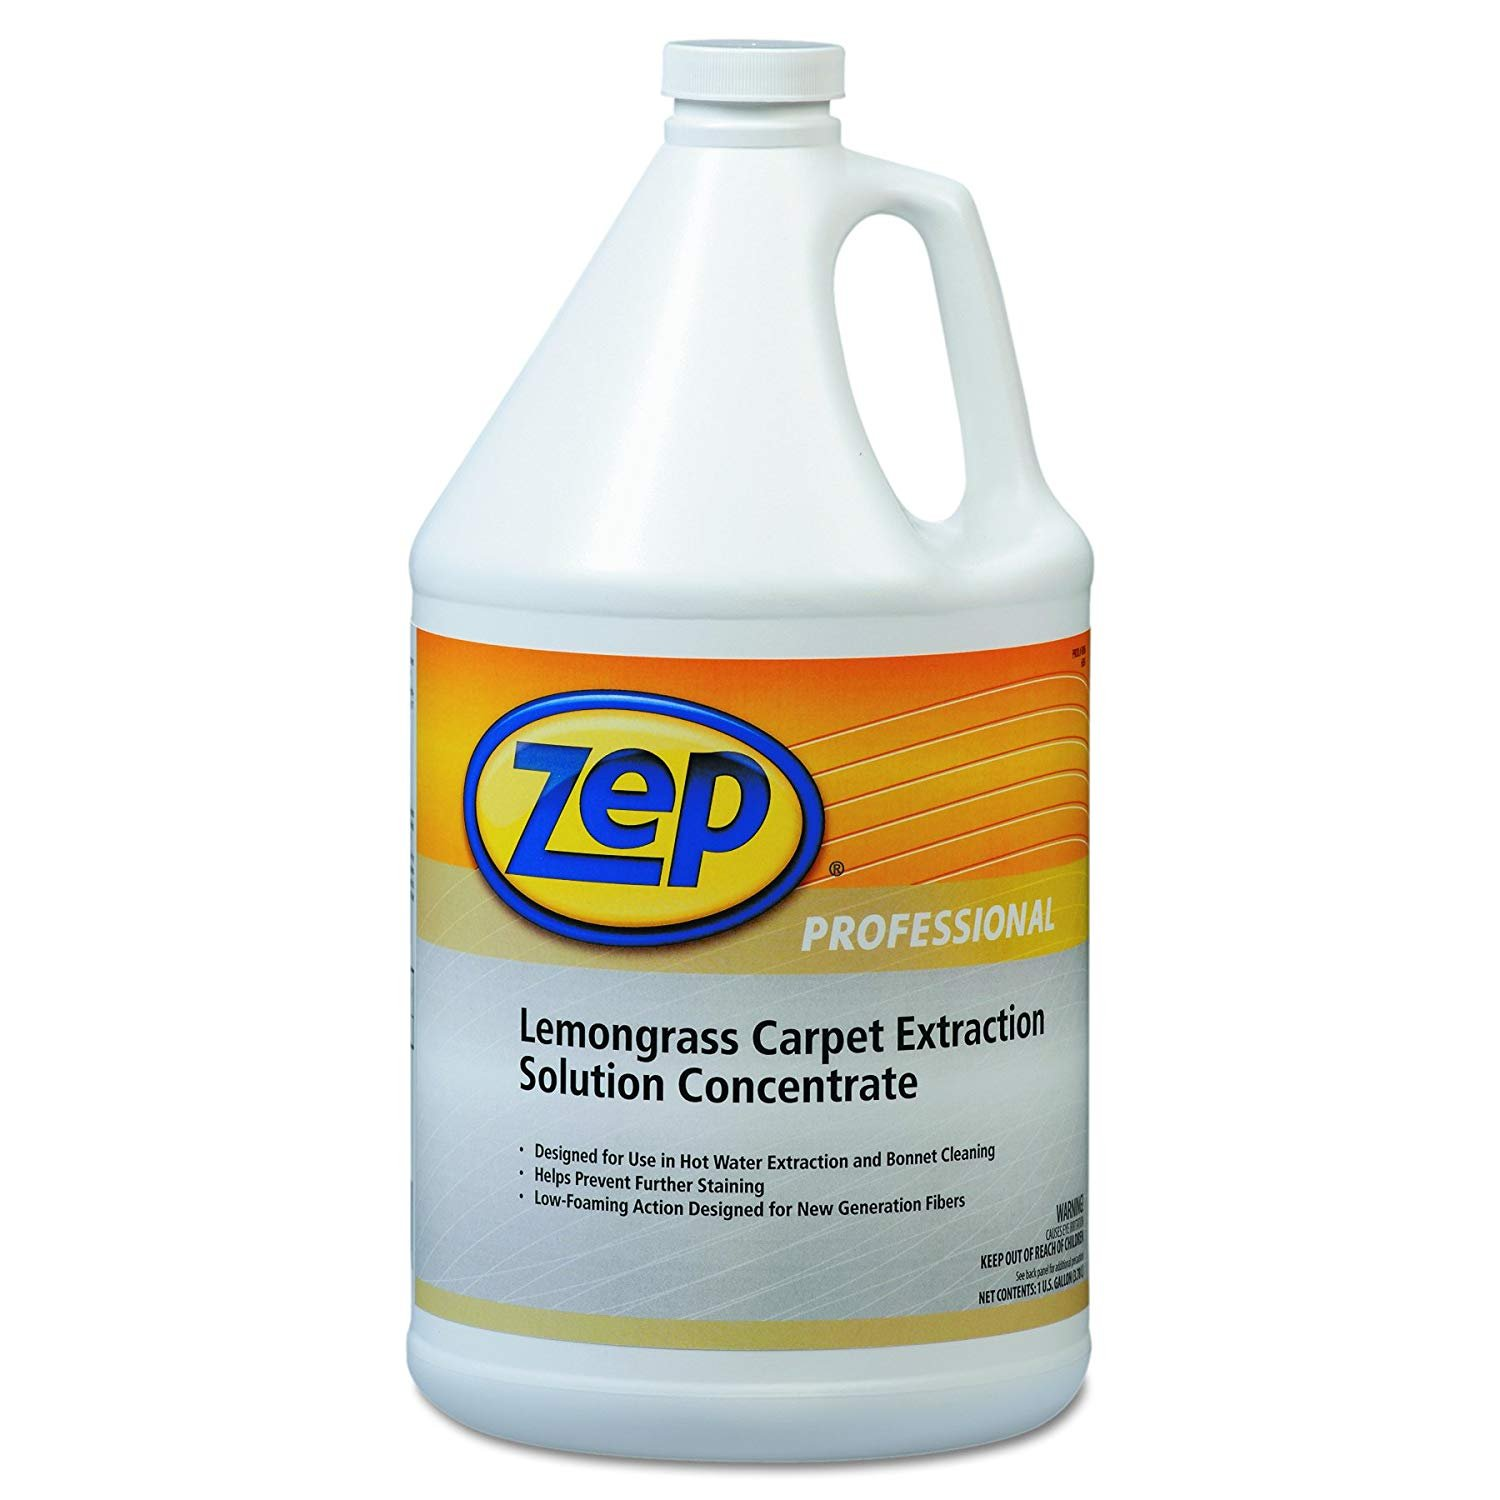 Zep Professional 1041398EA Carpet Extraction Cleaner, Lemongrass, 1 gal Bottle